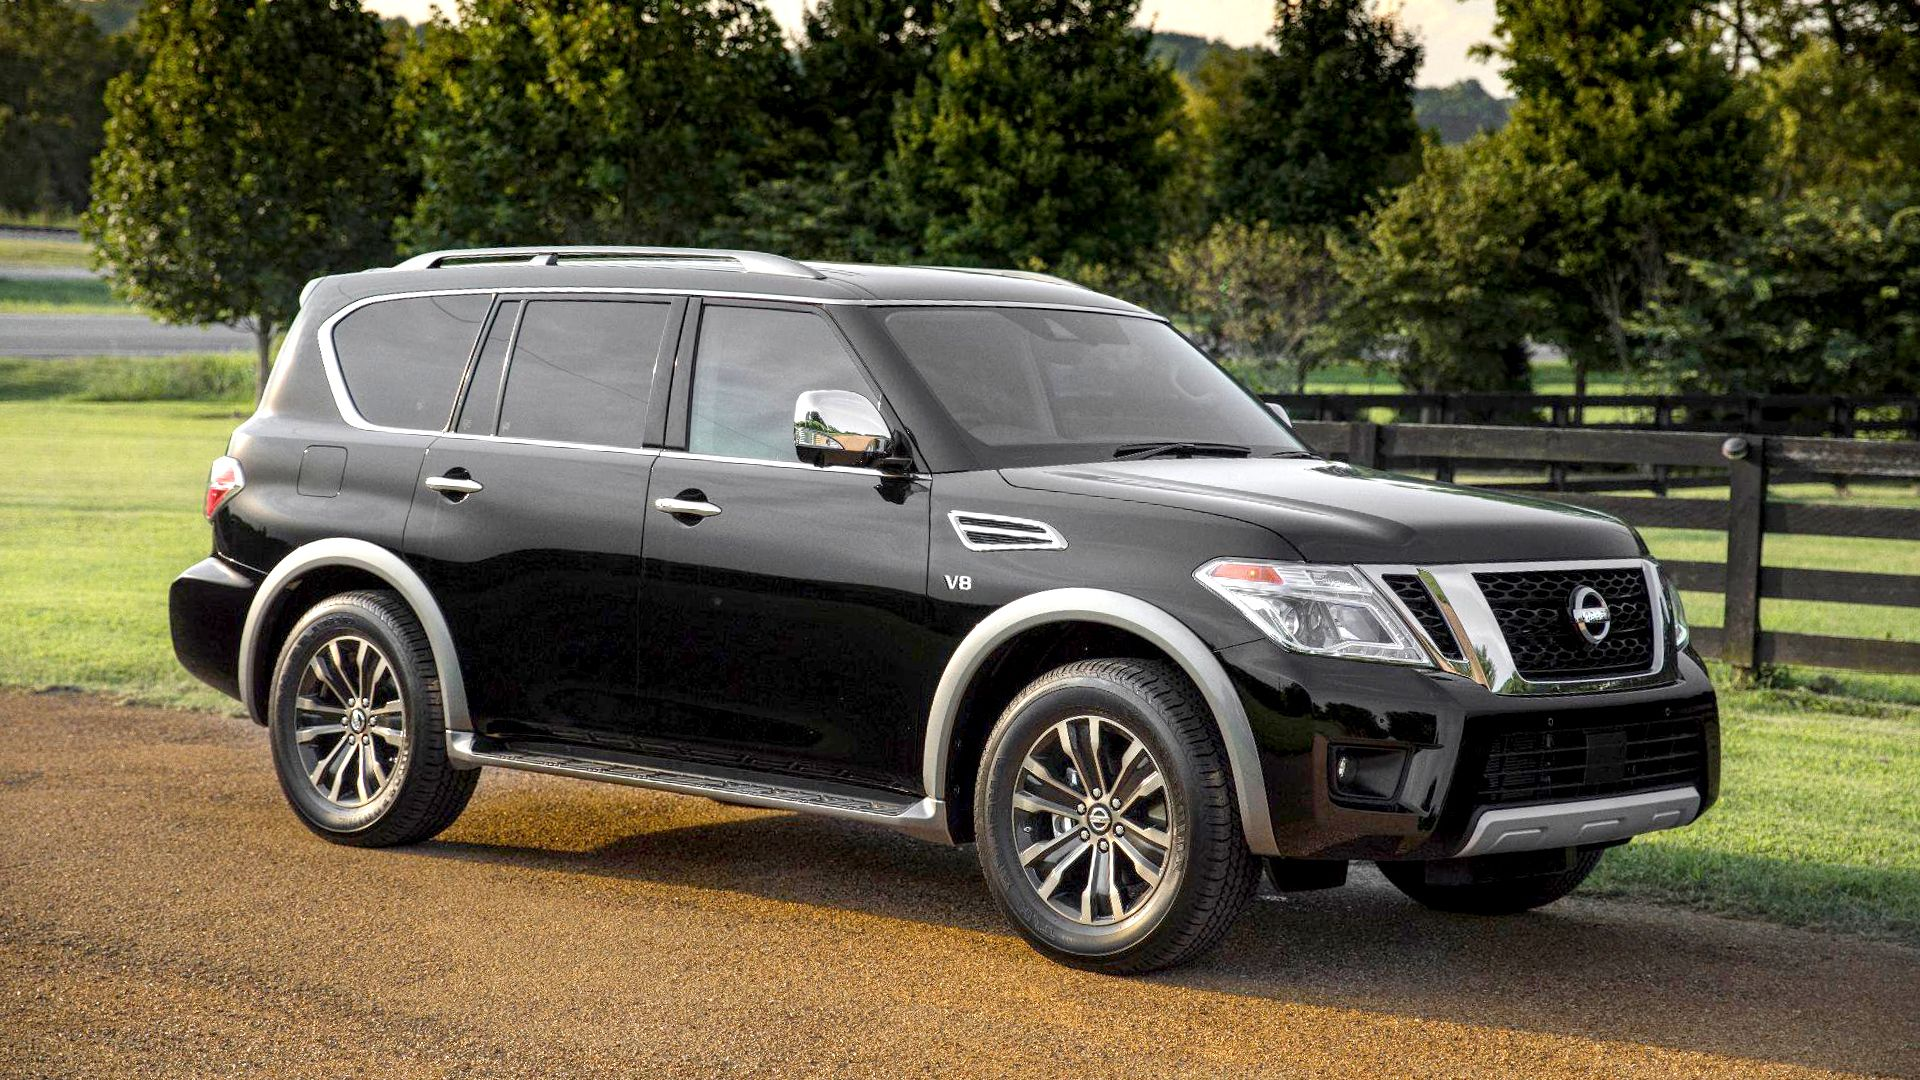 2020 Nissan Armada Diesel Release Date, Specs >> 2019 Nissan Armada Exterior Changes Cars Trucks Bikes Nissan